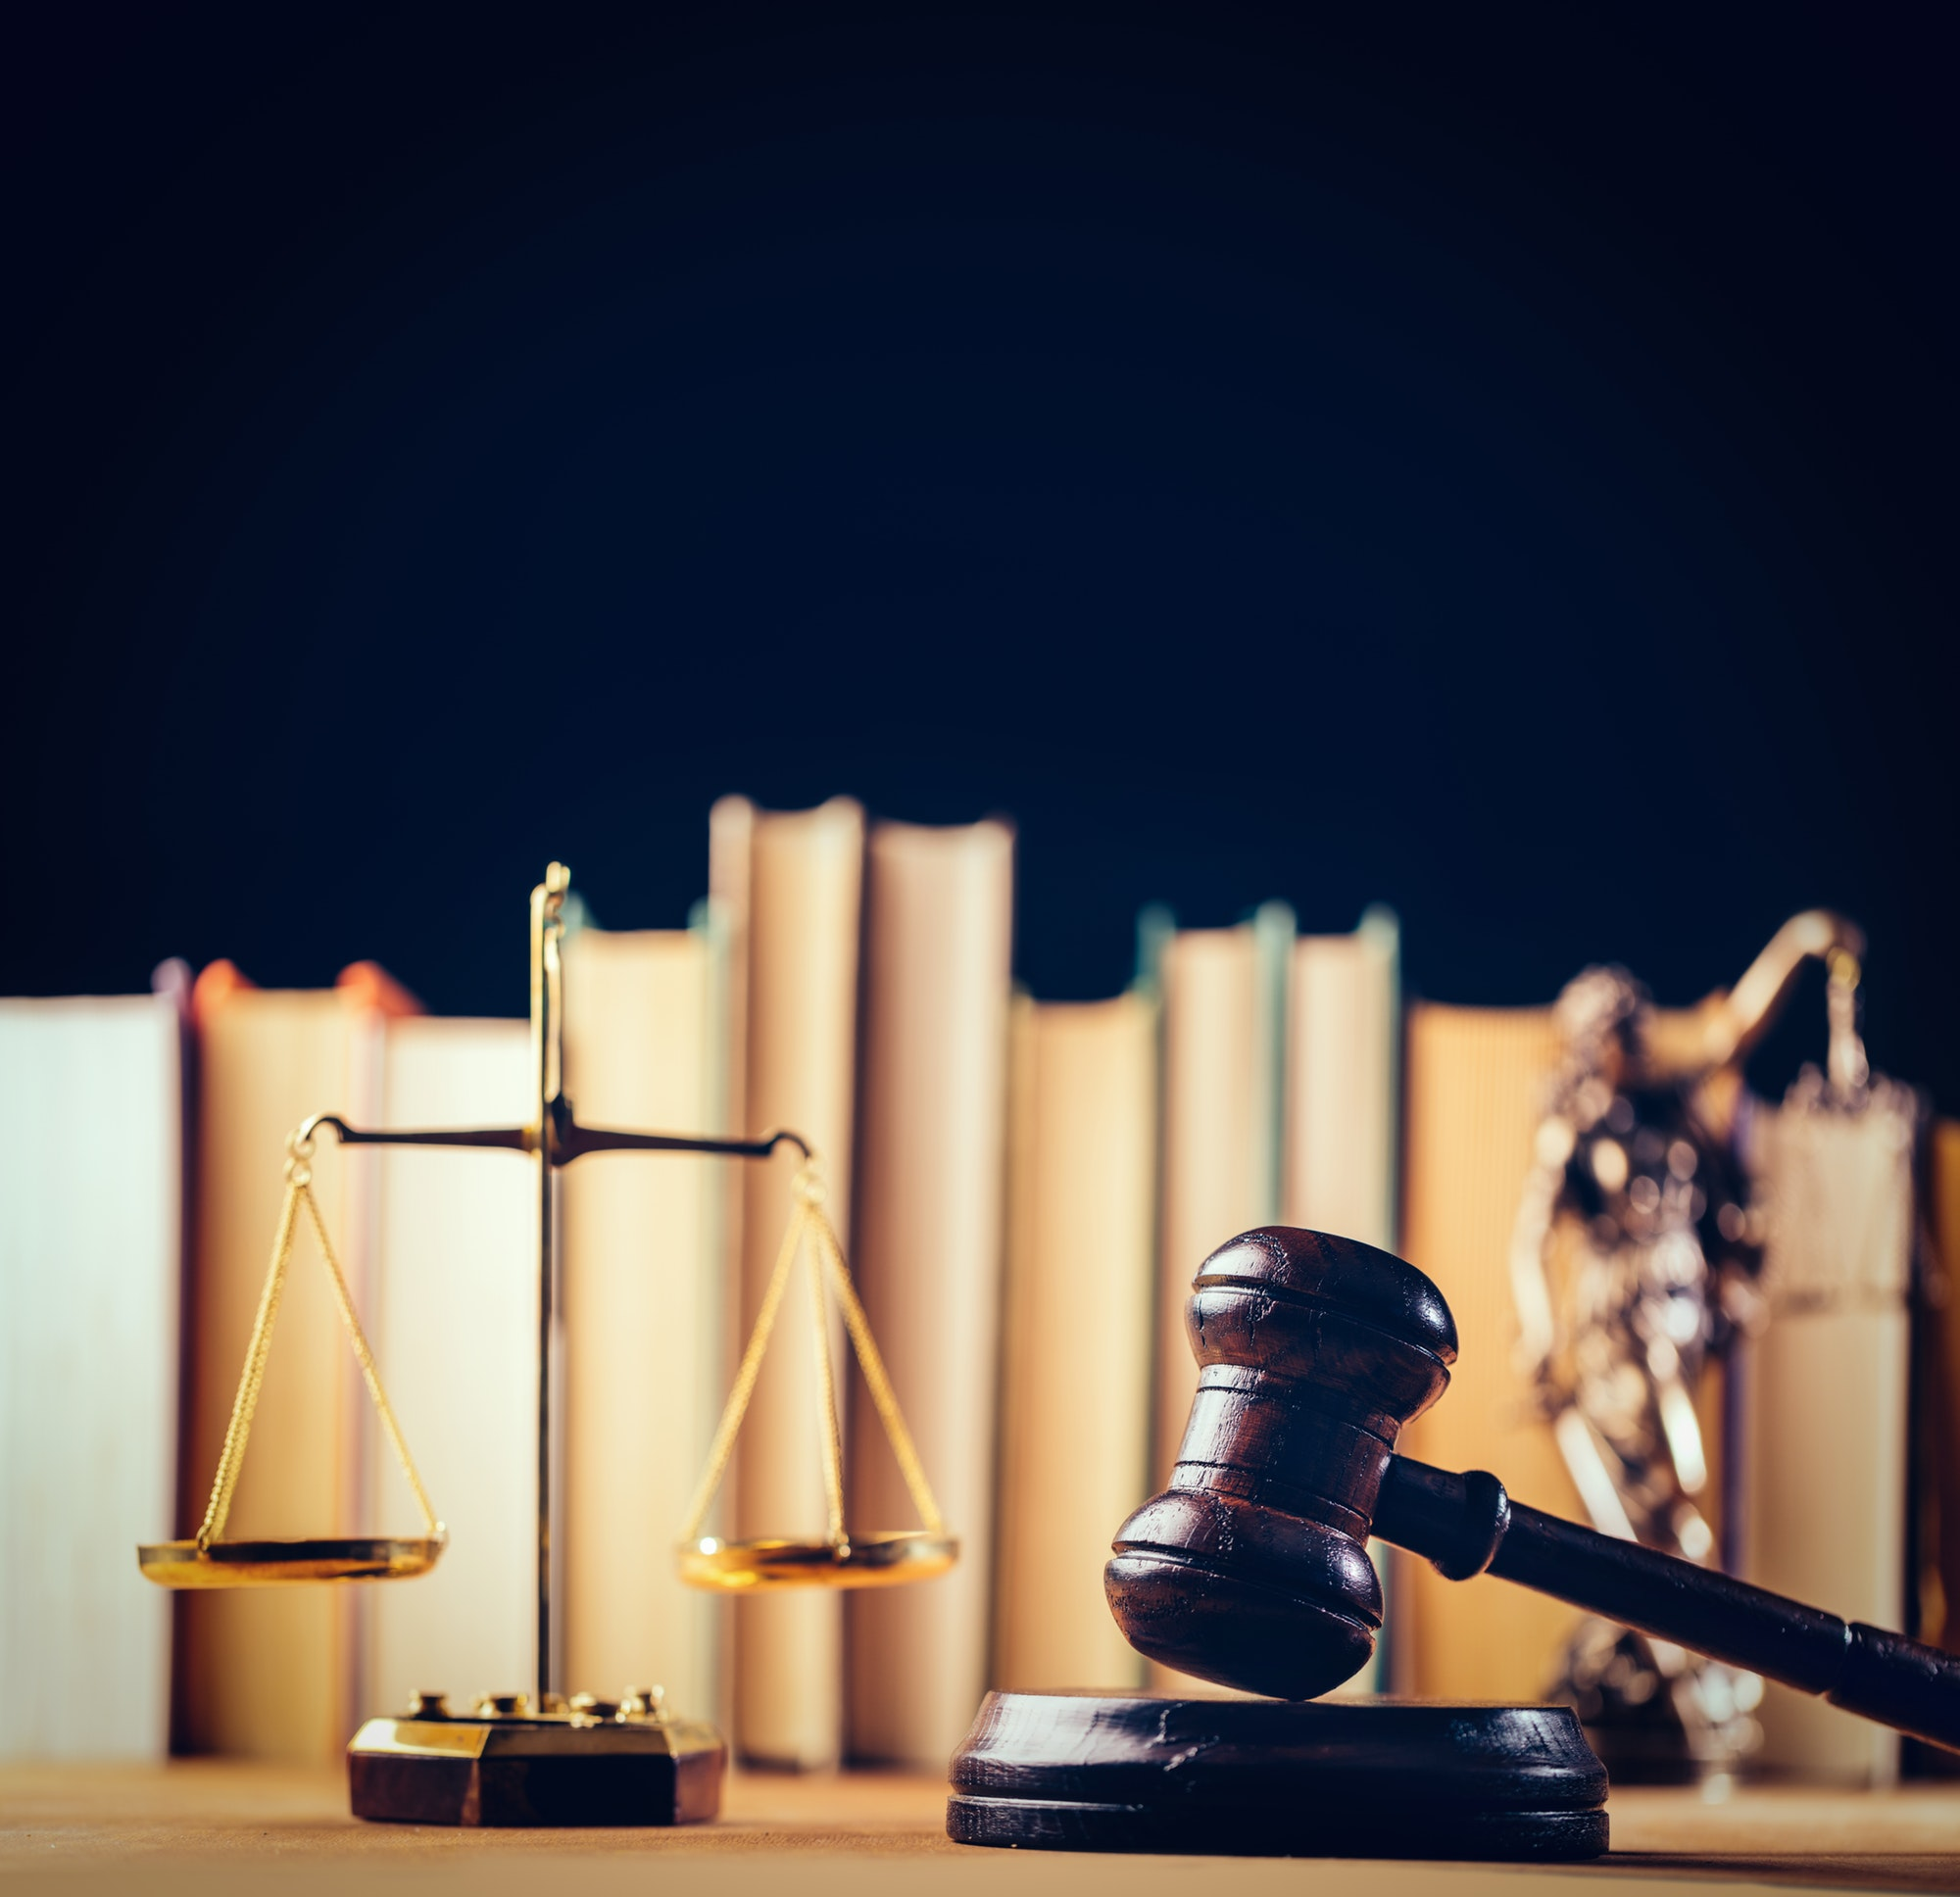 Symbols of law - scale, hammer and Themis Symbols of law - scale, hammer and Themis business legal attorney boca raton fl